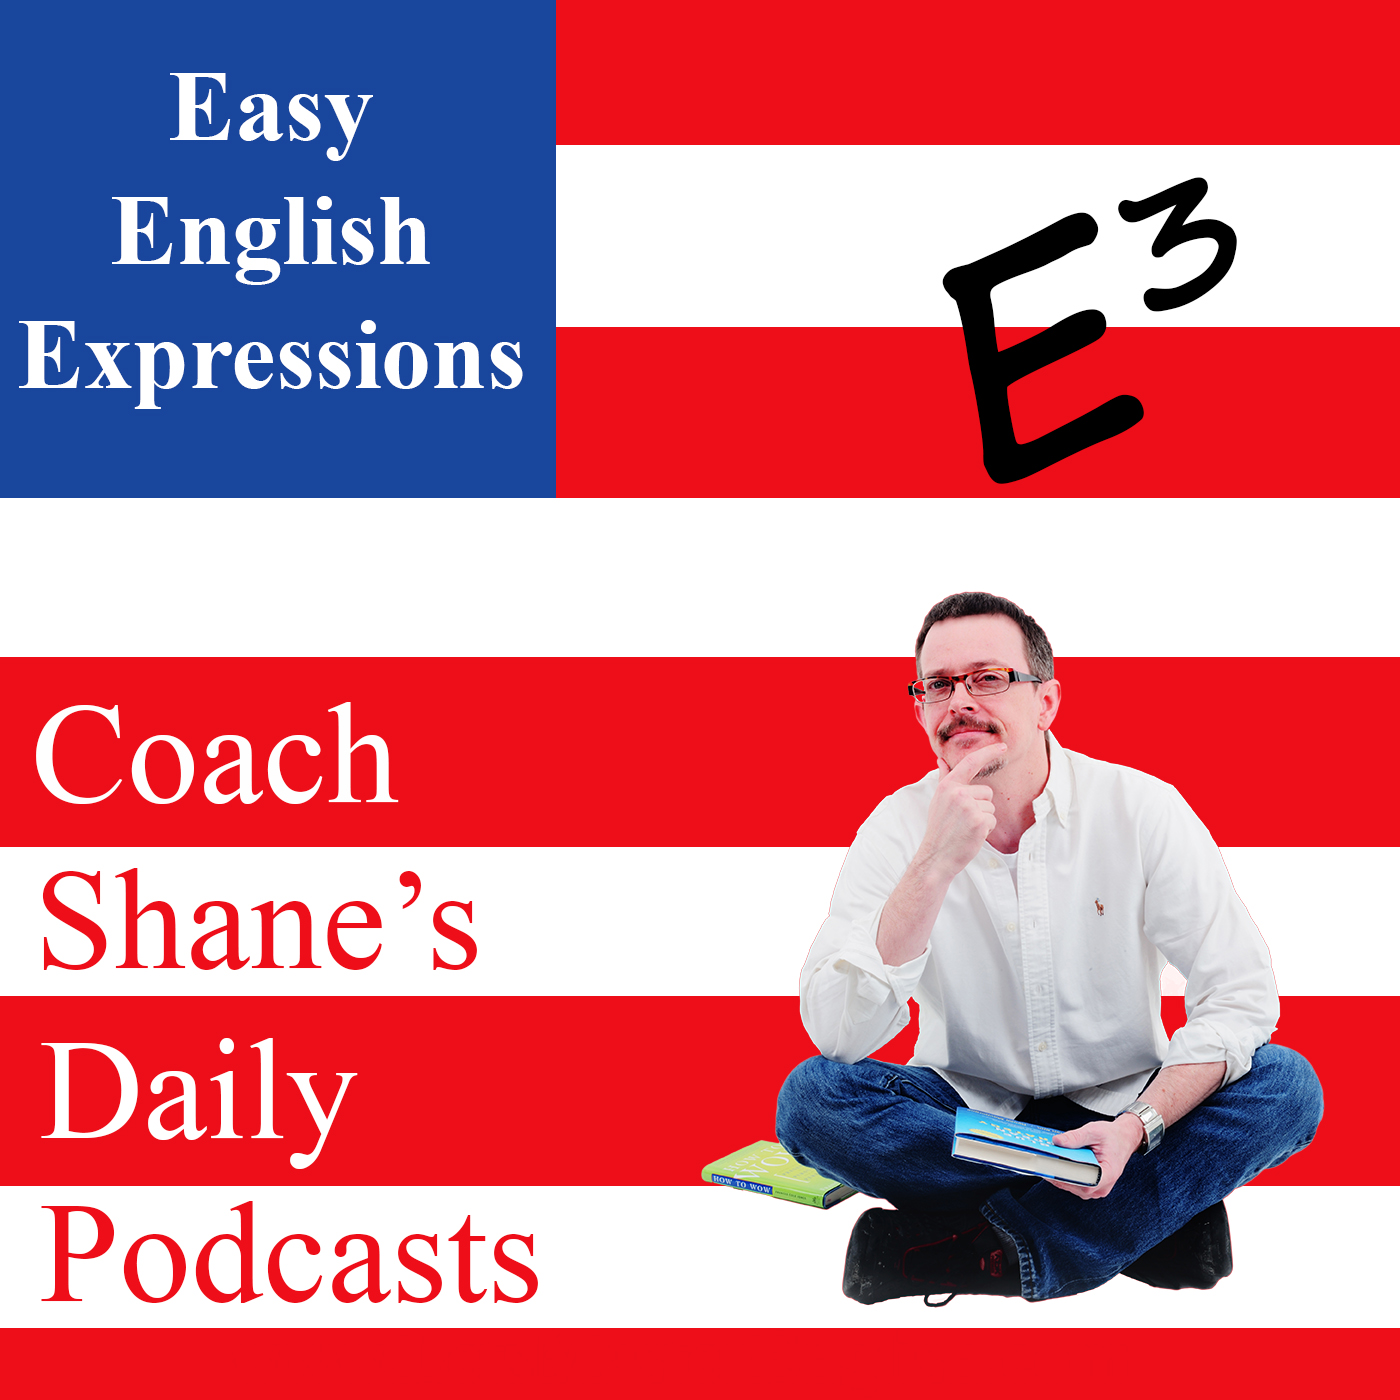 47 Daily Easy English Expression PODCAST—to LACK something